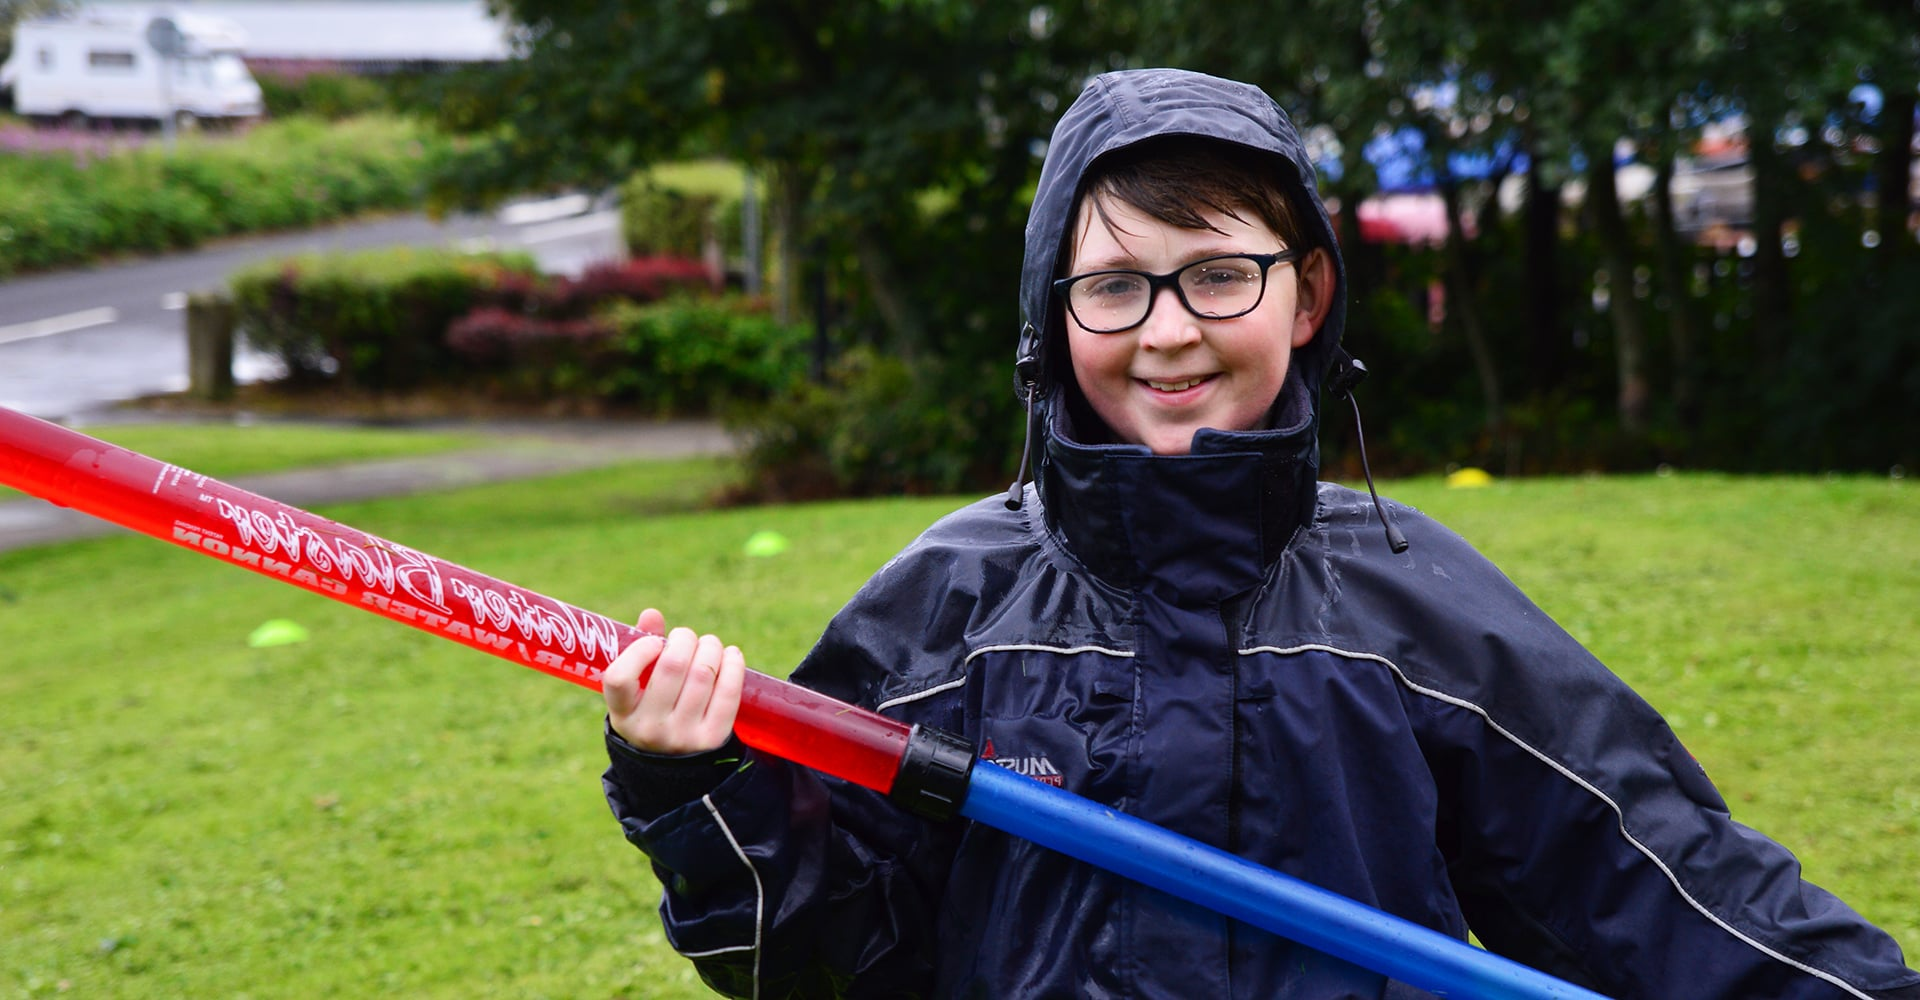 Finn holding a large water gun on a trip in Largs